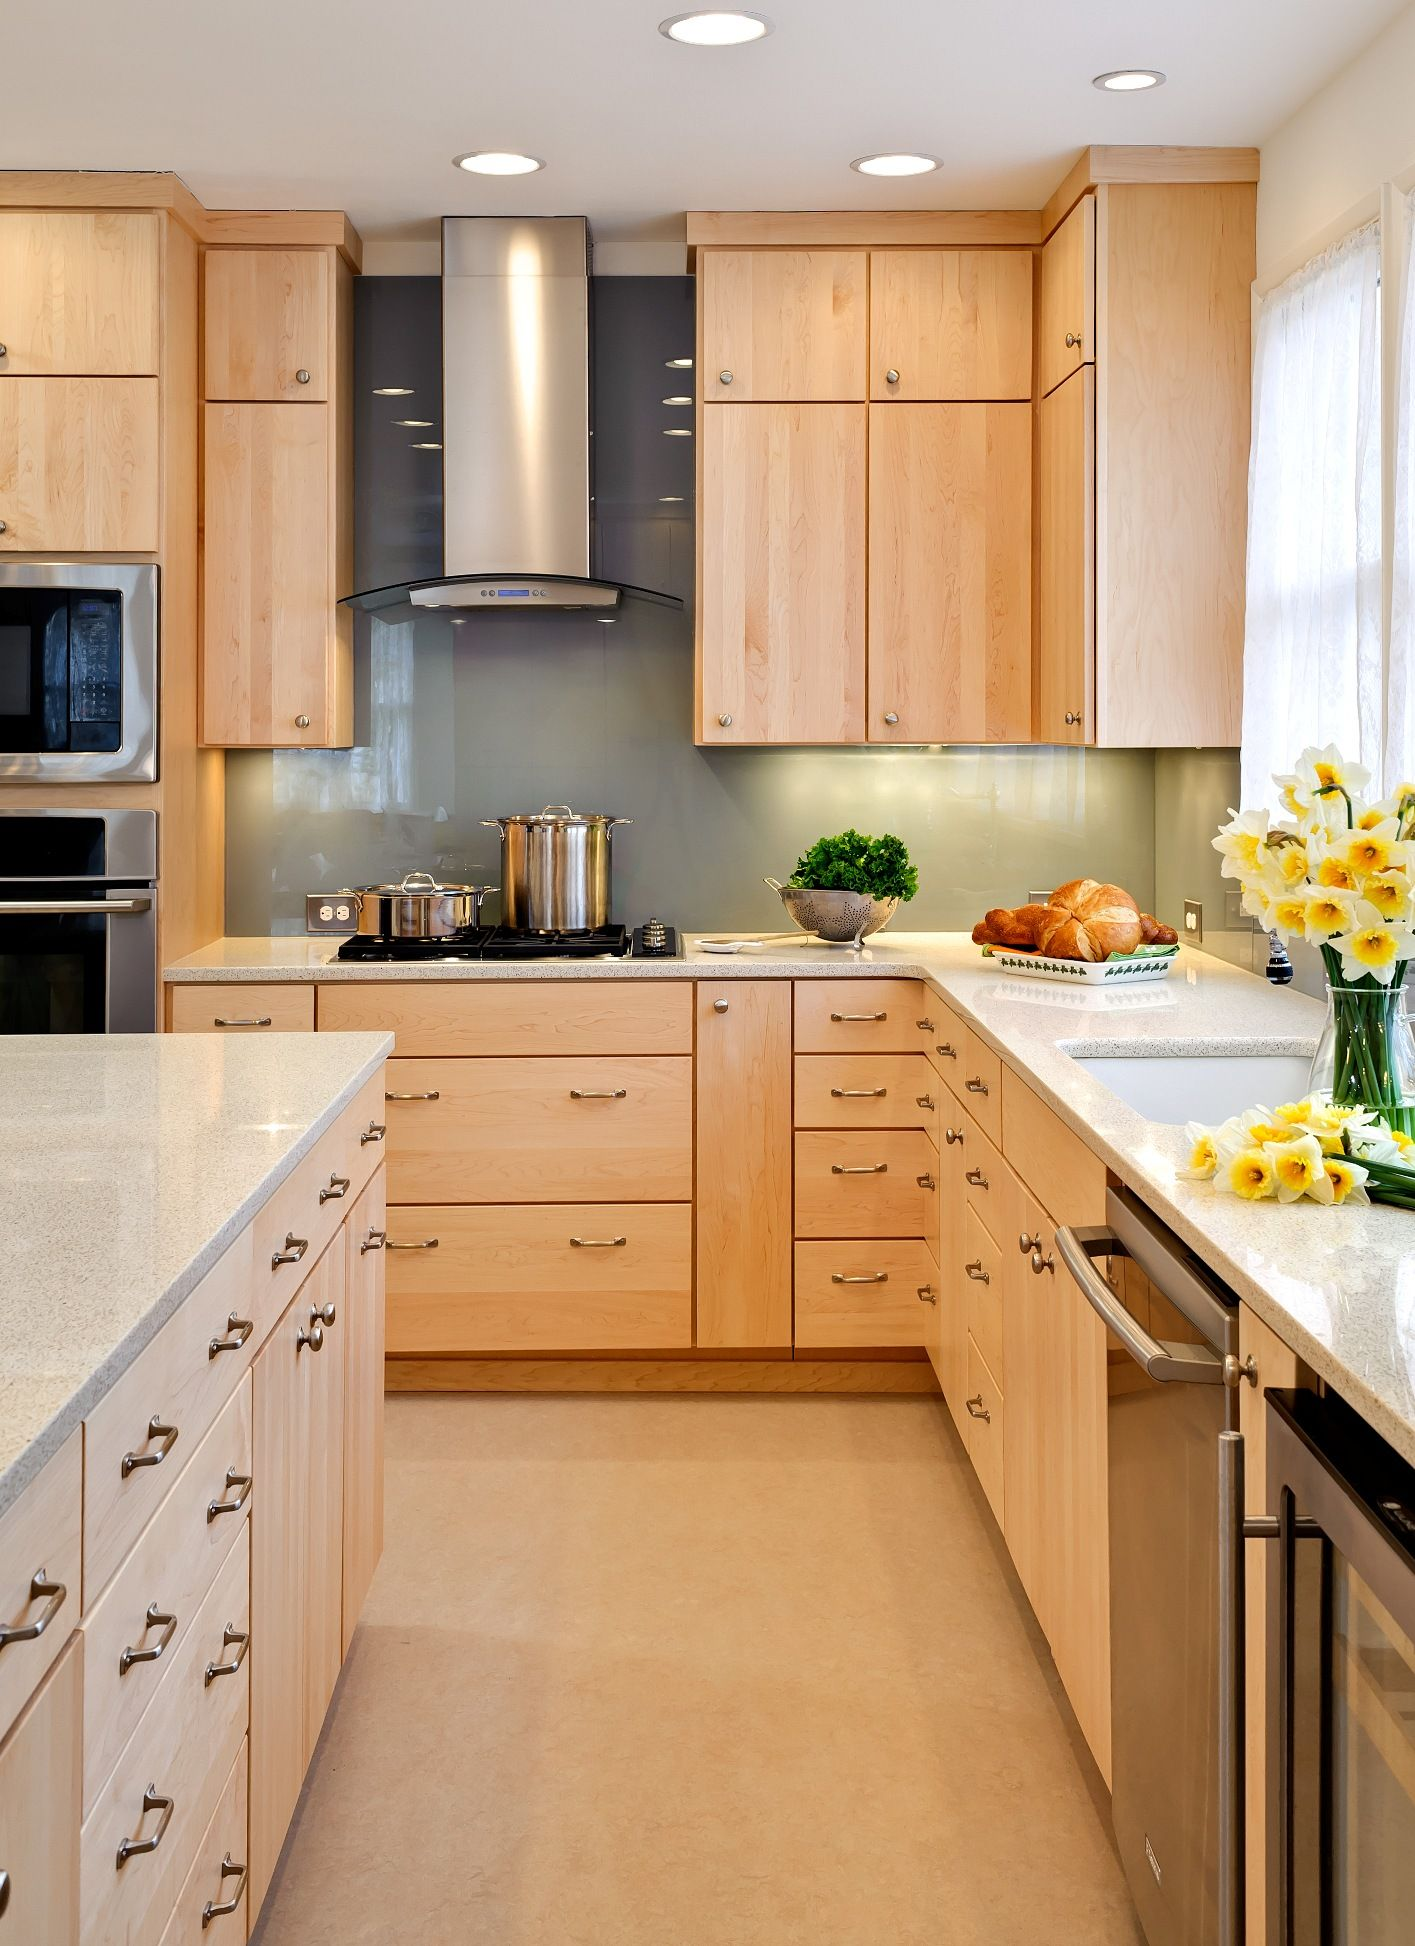 kitchens with maple cabinets too modern but we could do maple cabinets as another option and this is a plain